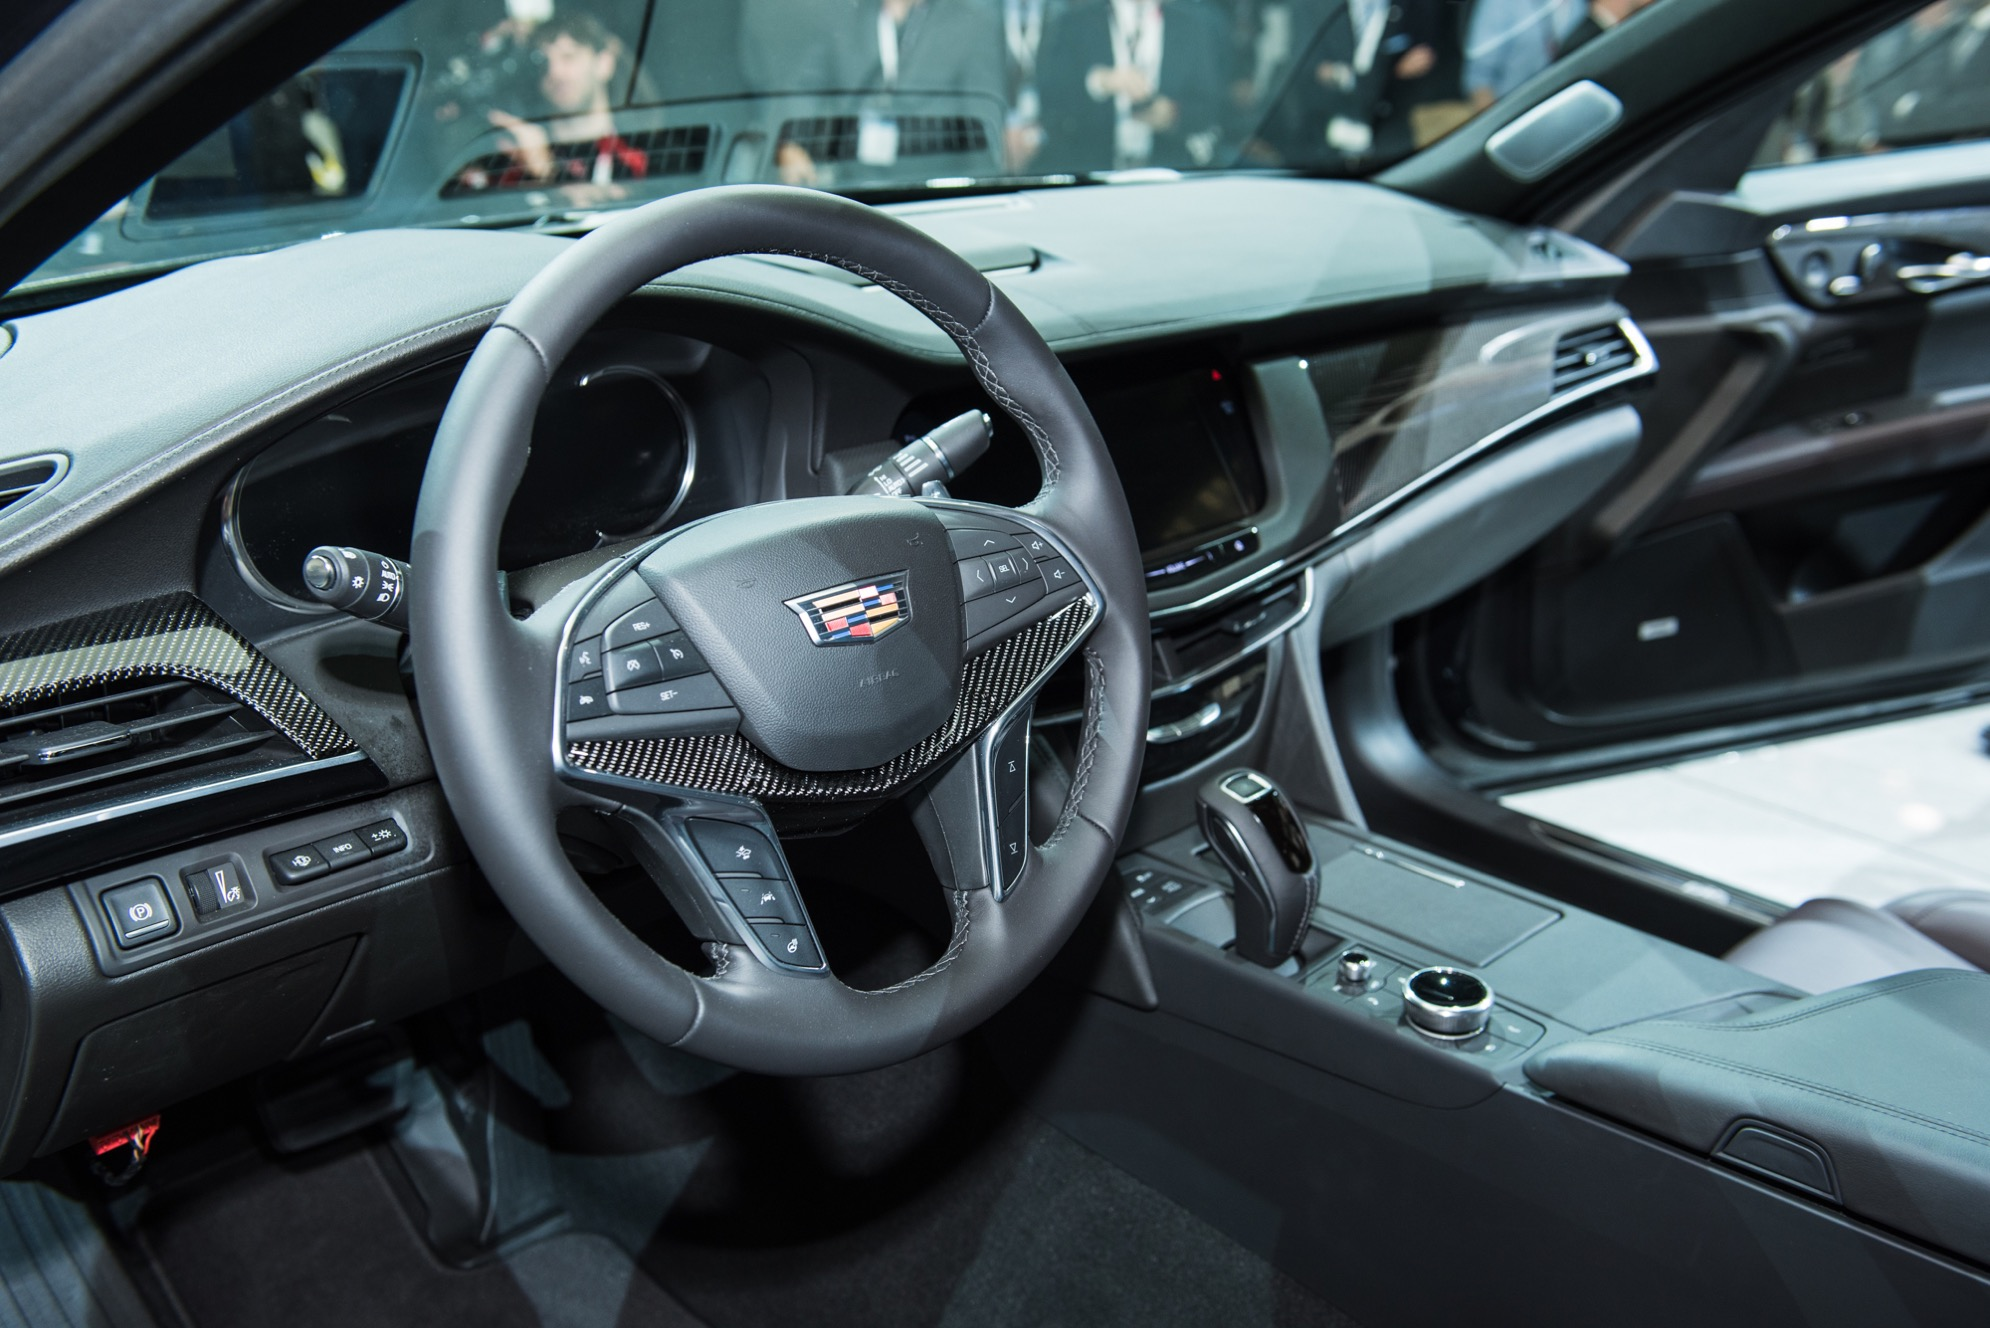 2020 Cadillac CT6 Changes, Interior, Price, And Specs >> Cadillac Ct6 V Gets Various Changes For 2020 Model Year